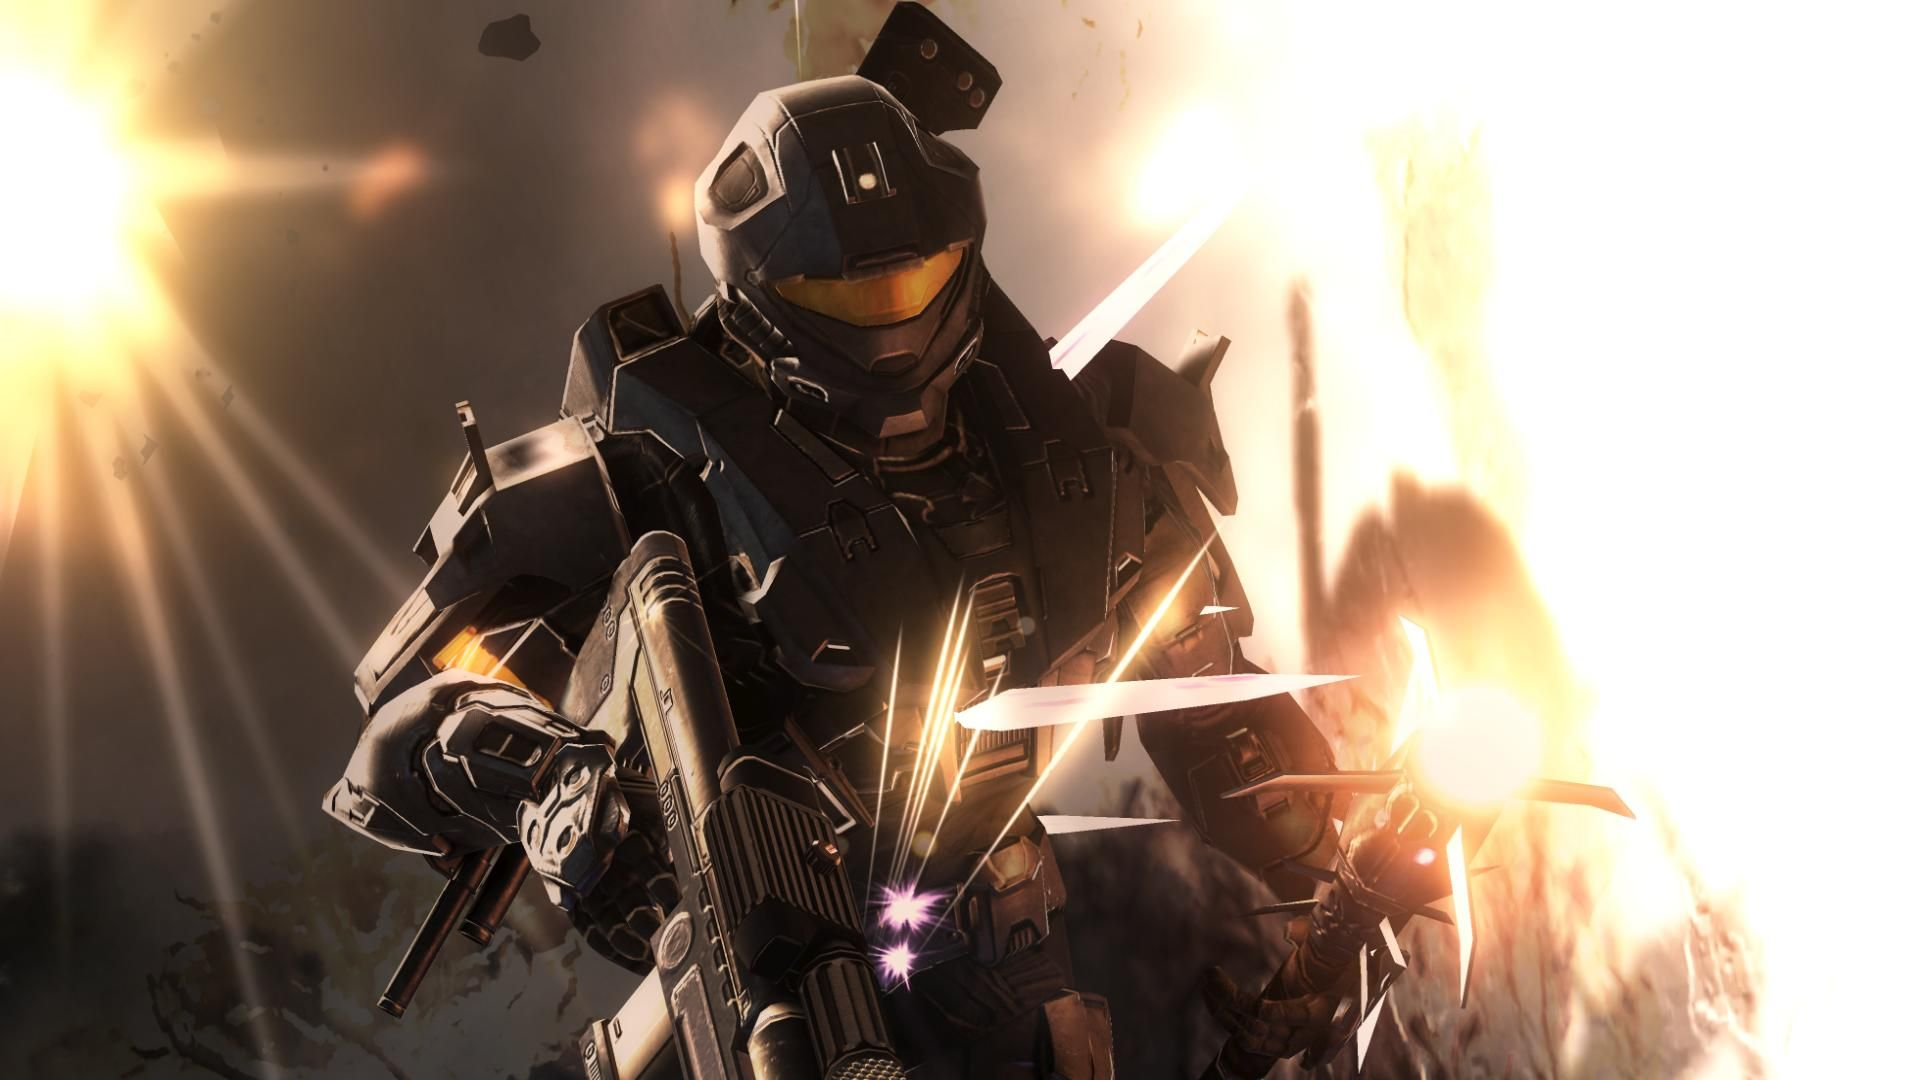 Images For Gt Halo 3 Recon Armor With Images Halo 3 Halo Armor